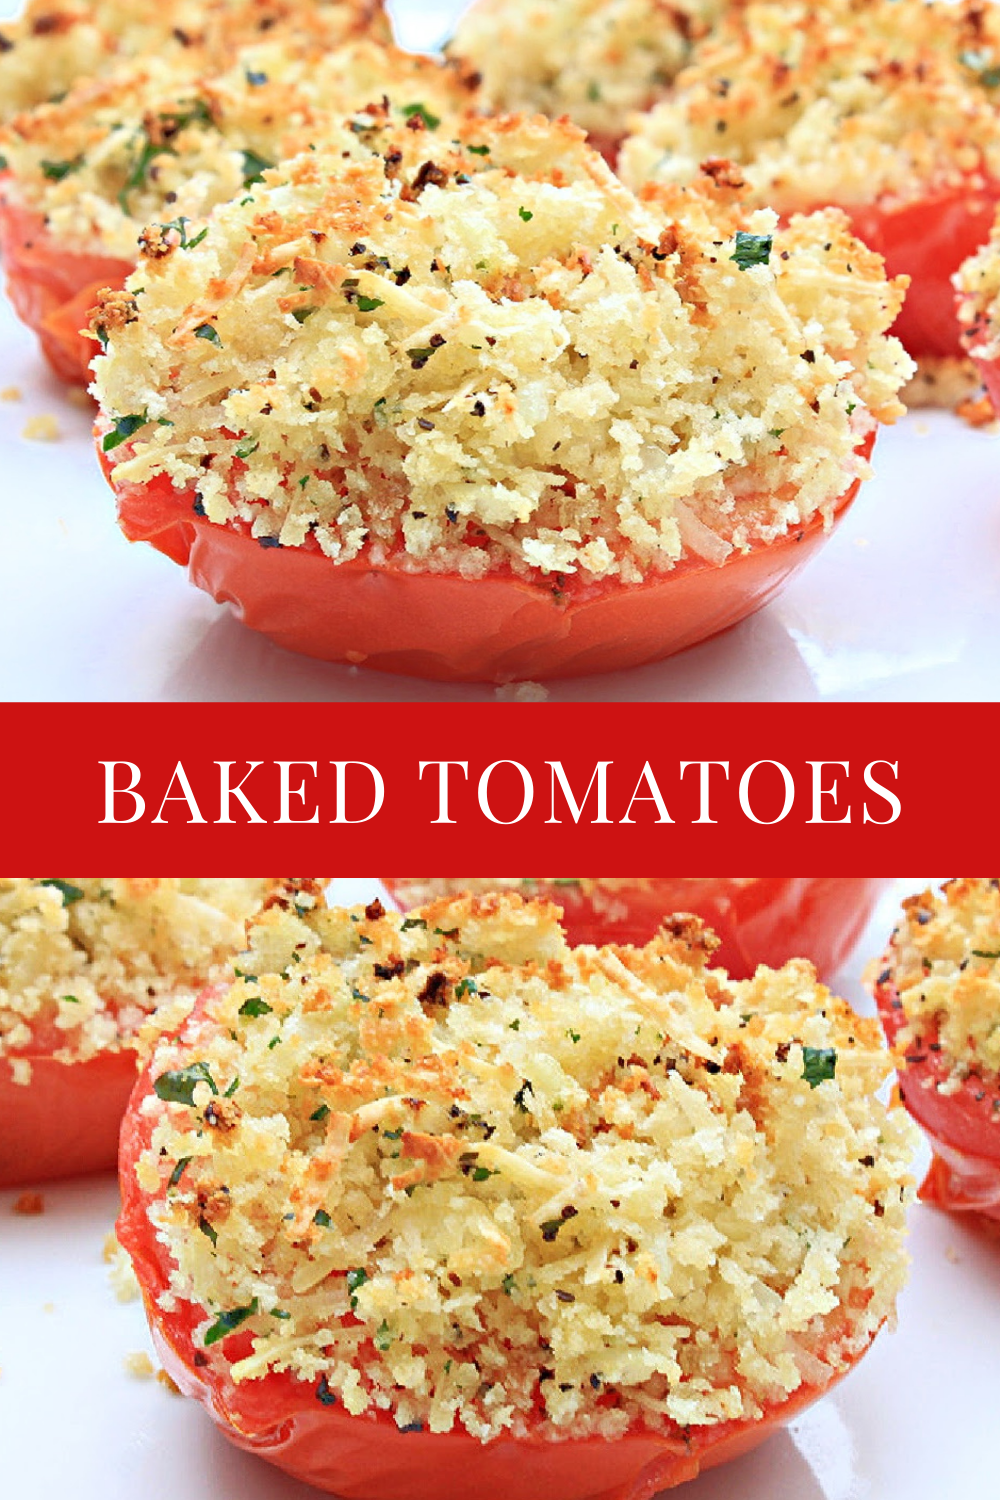 Vine-ripened tomatoes stuffed with savory deliciousness for a quick Italian-style side dish or light meal! via @thiswifecooks